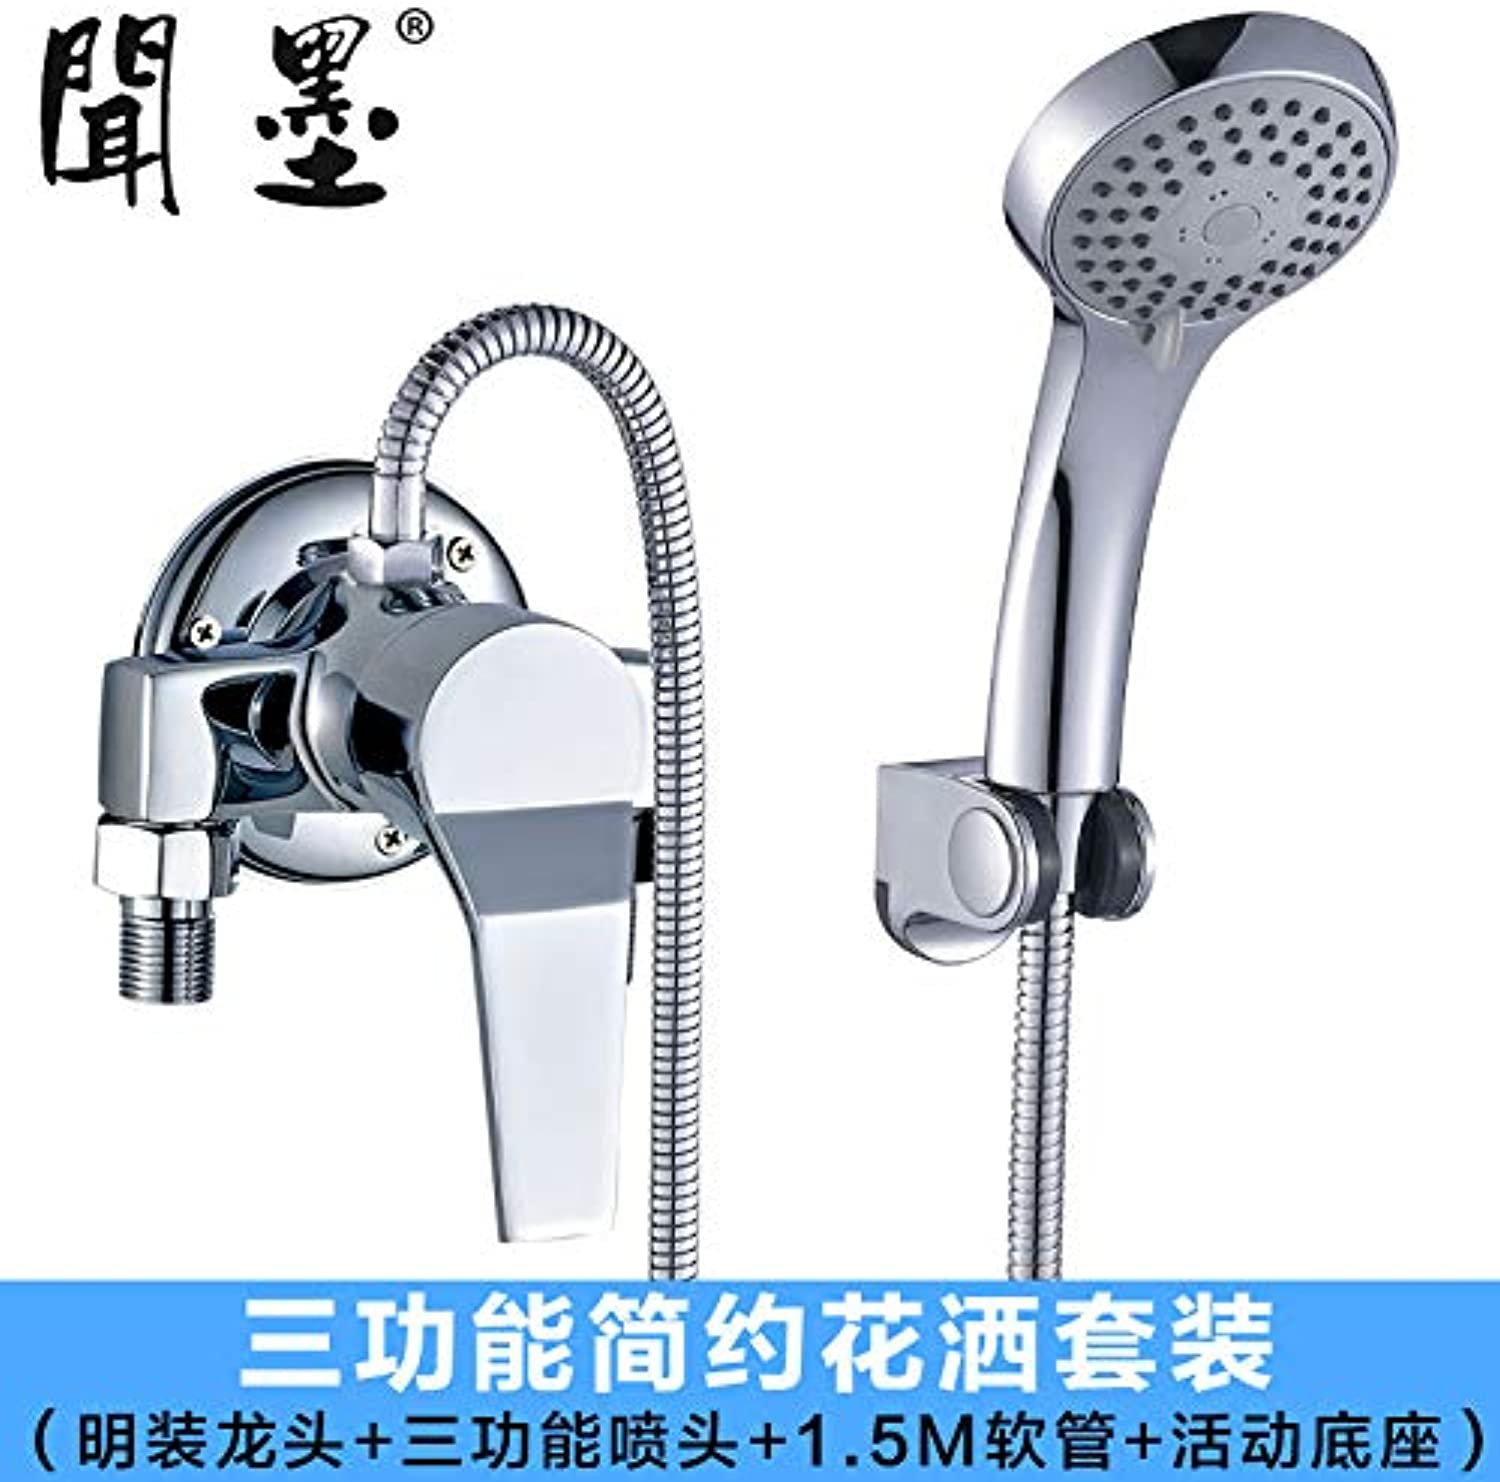 PajCzh Bathroom Fixturesshower Faucet Solar Electric Water Heater Mixing Valve Shower Switch Copper Hot And Cold Mounted Shower Mixer Faucet, Wall Mounted Faucet + Simple Shower Set